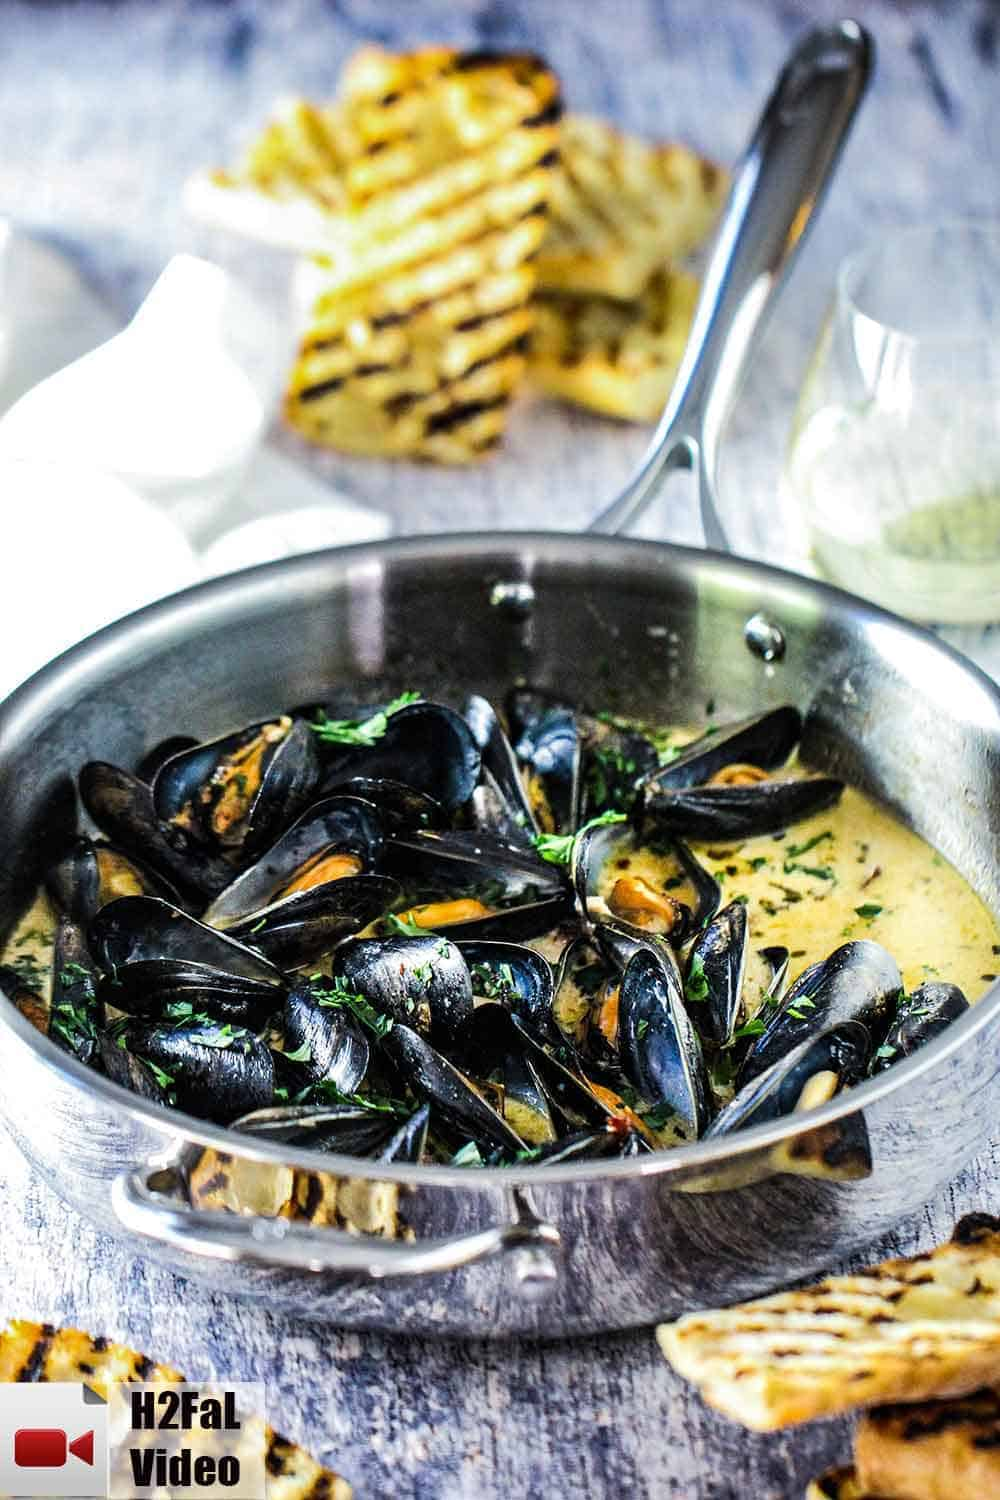 A large silver sauce pan with mussels and garlic and wine in it